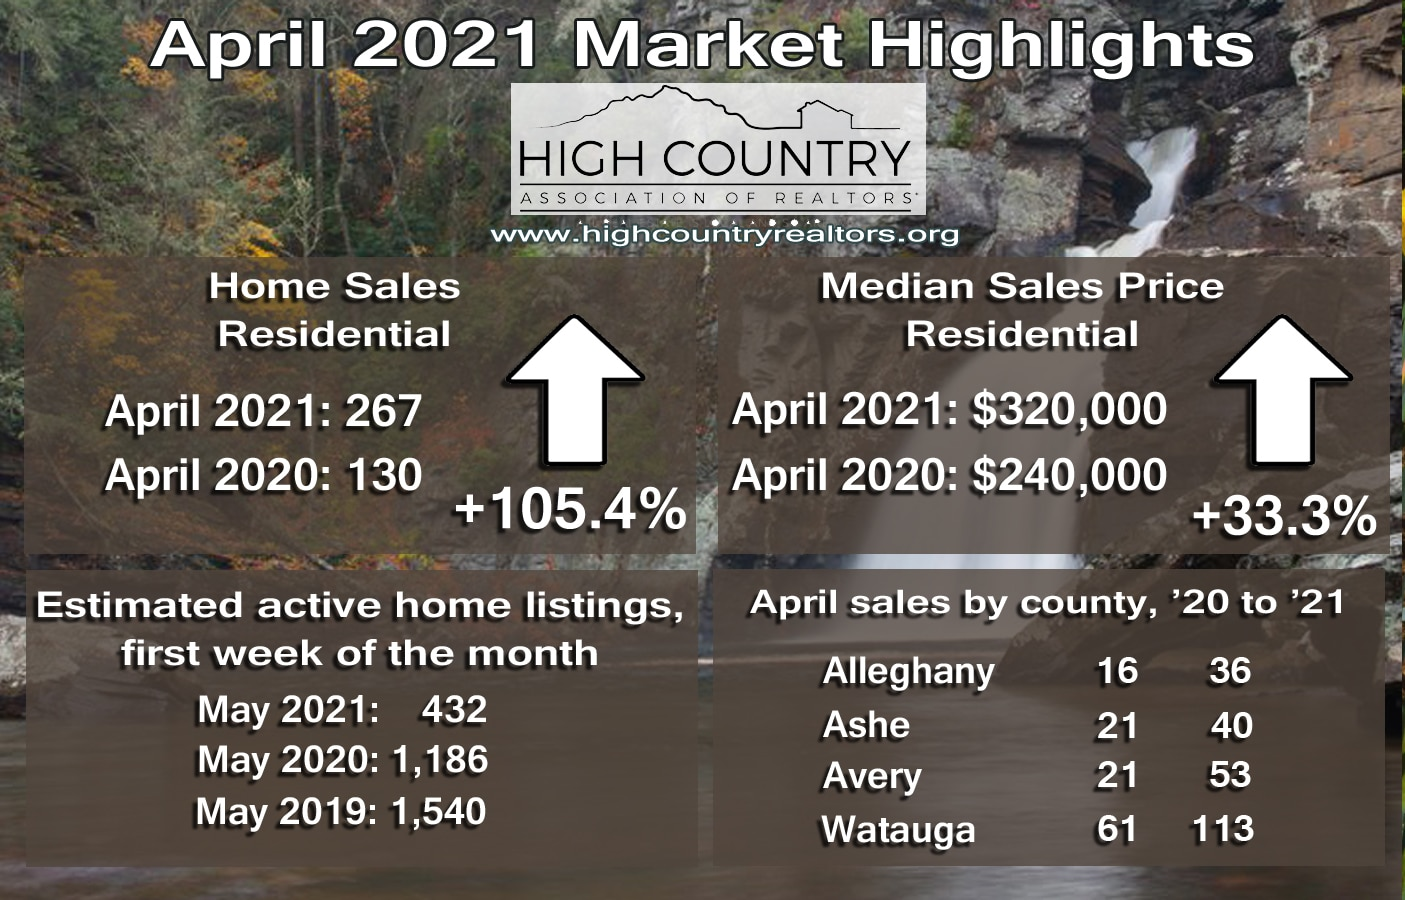 Housing inventory grows in April 2021